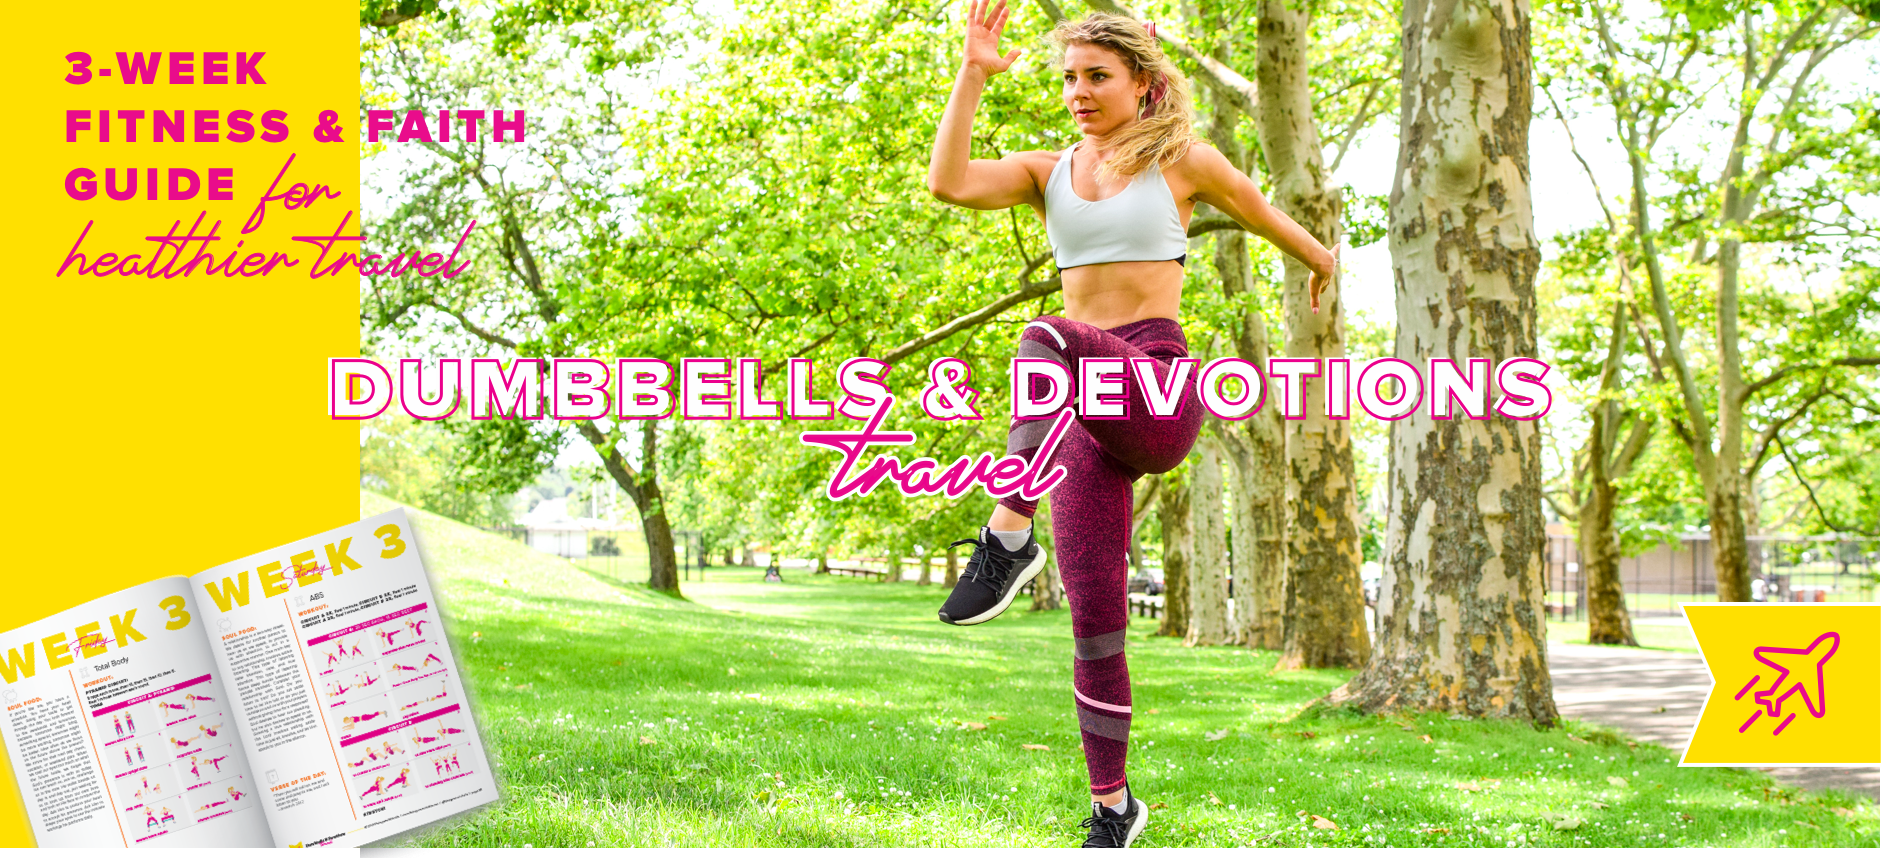 Dumbbells & Devotions TRAVEL a 3-week fitness and faith program for healthier traveling. It is designed to help women know their worth, get fit, and love themselves.